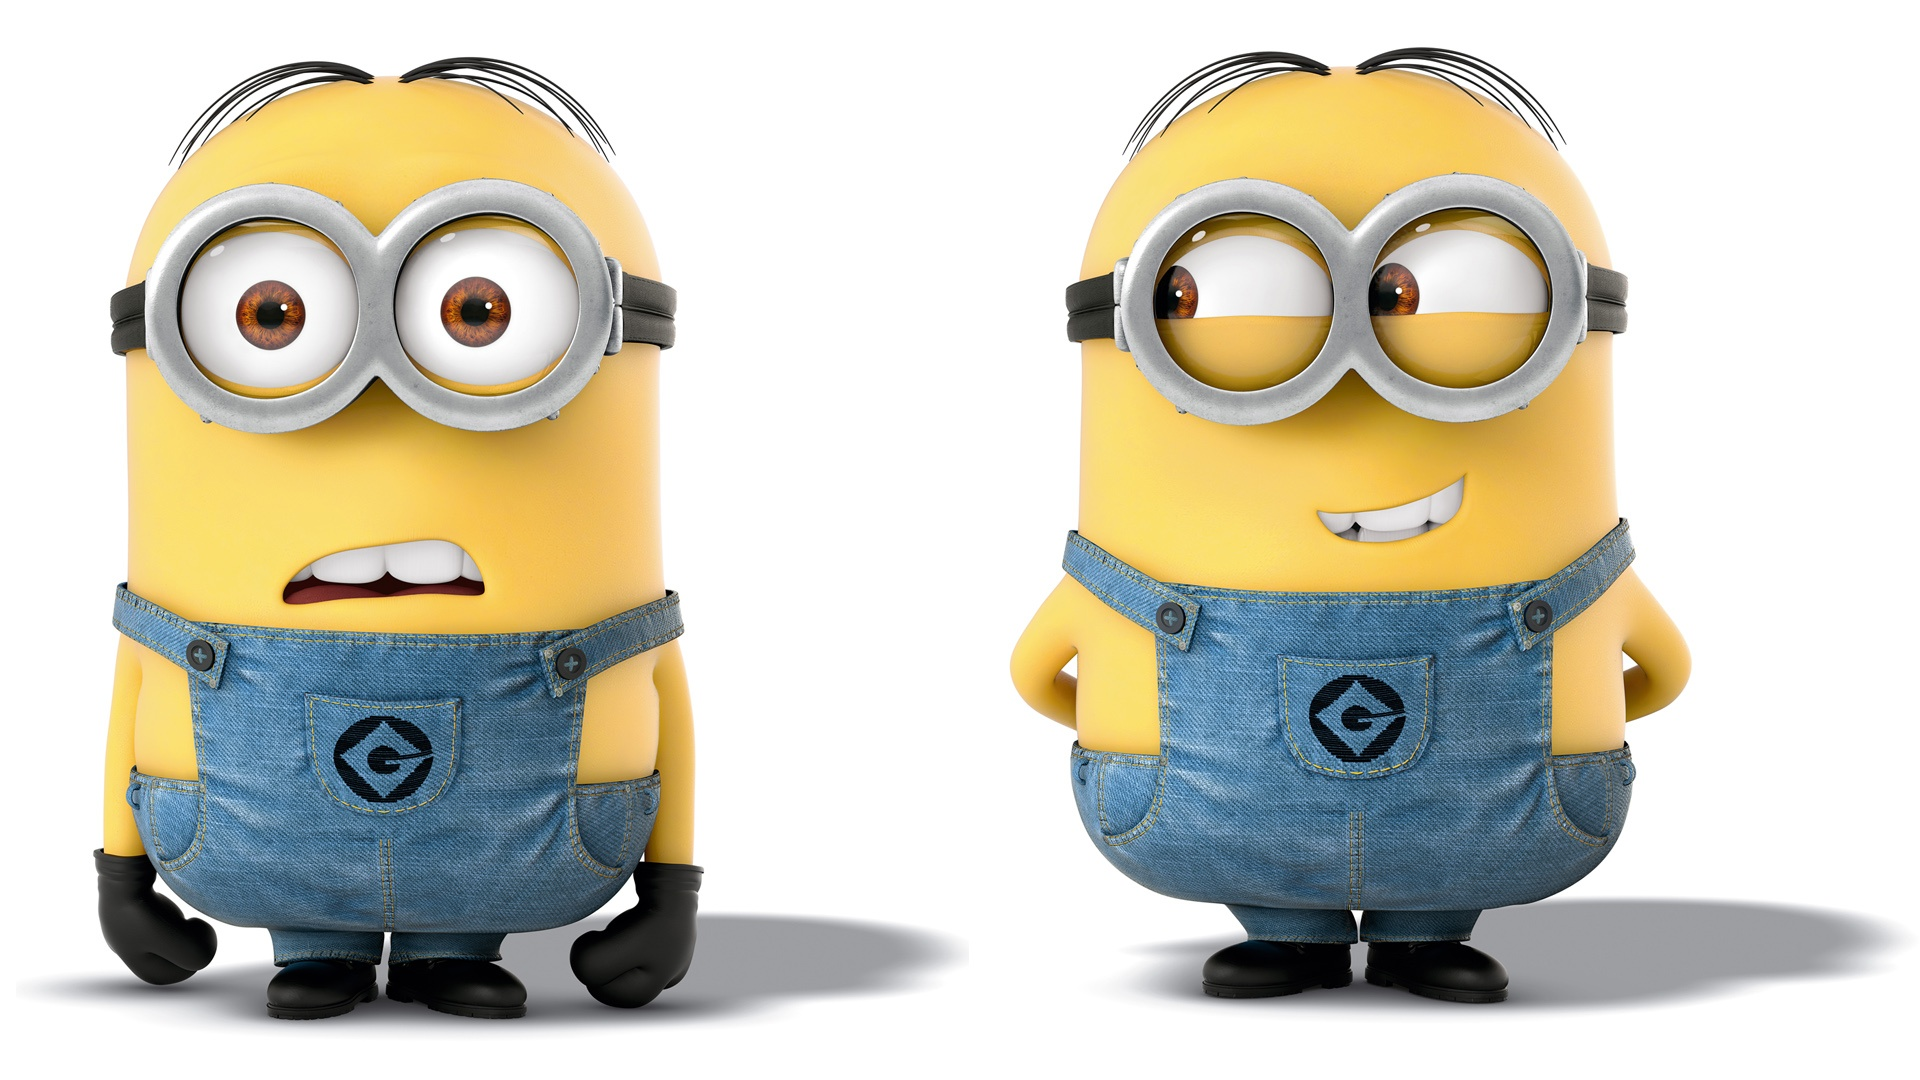 Despicable Me Minions Images HD Wallpaper And Background Photos